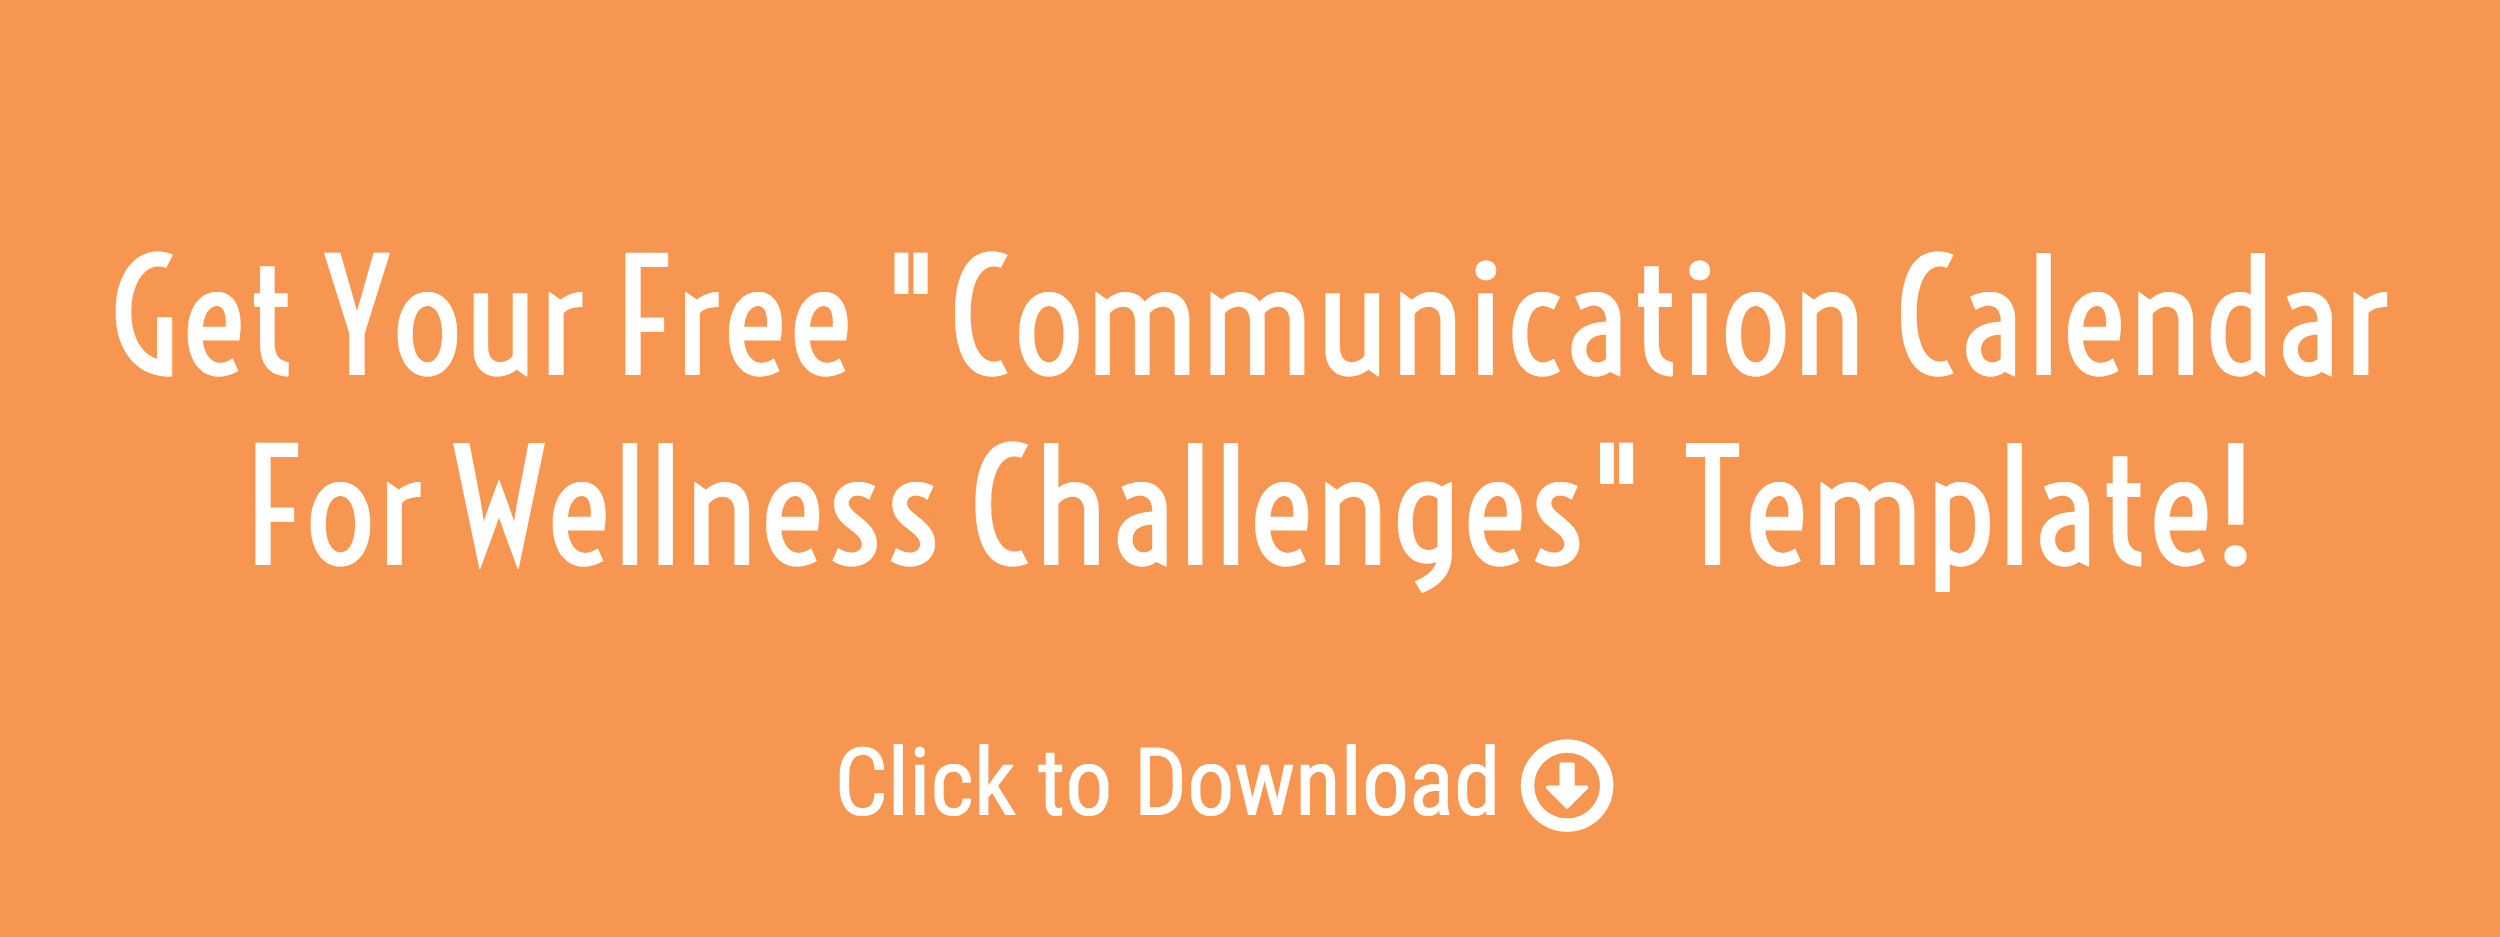 communication calendar for wellness challenges template